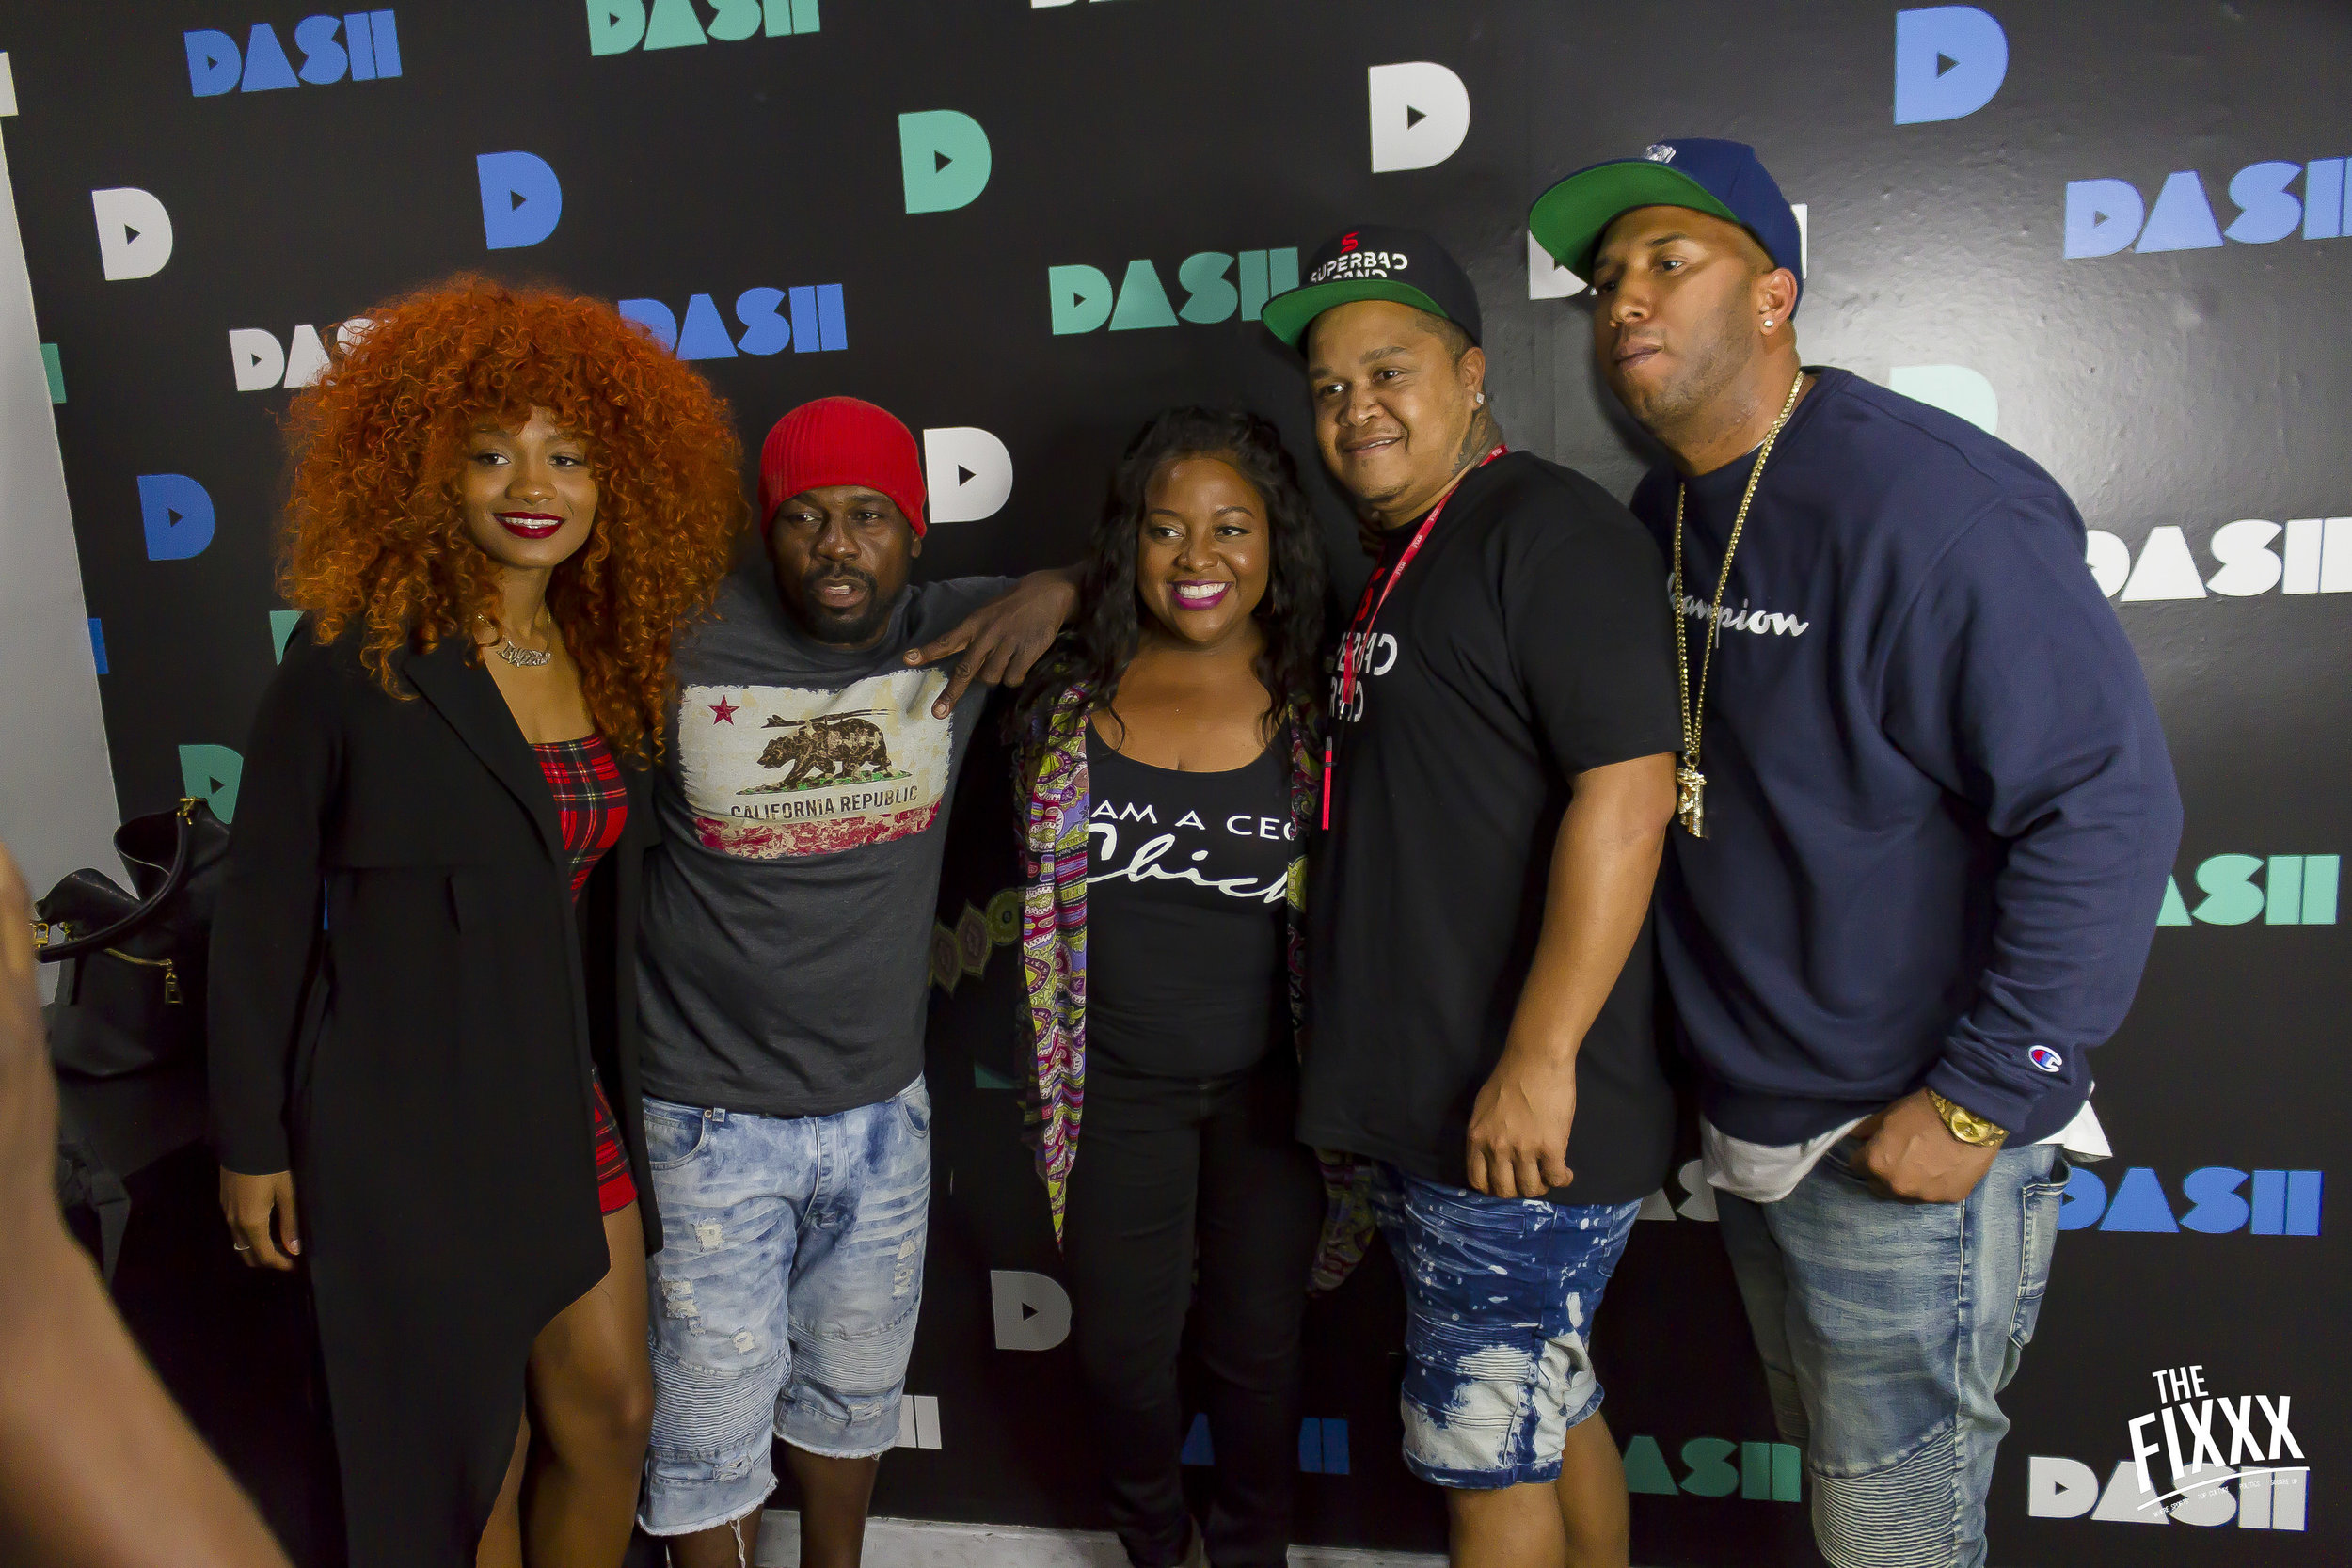 The Fixxx on Dash Radio - 08-31-18_37.jpg